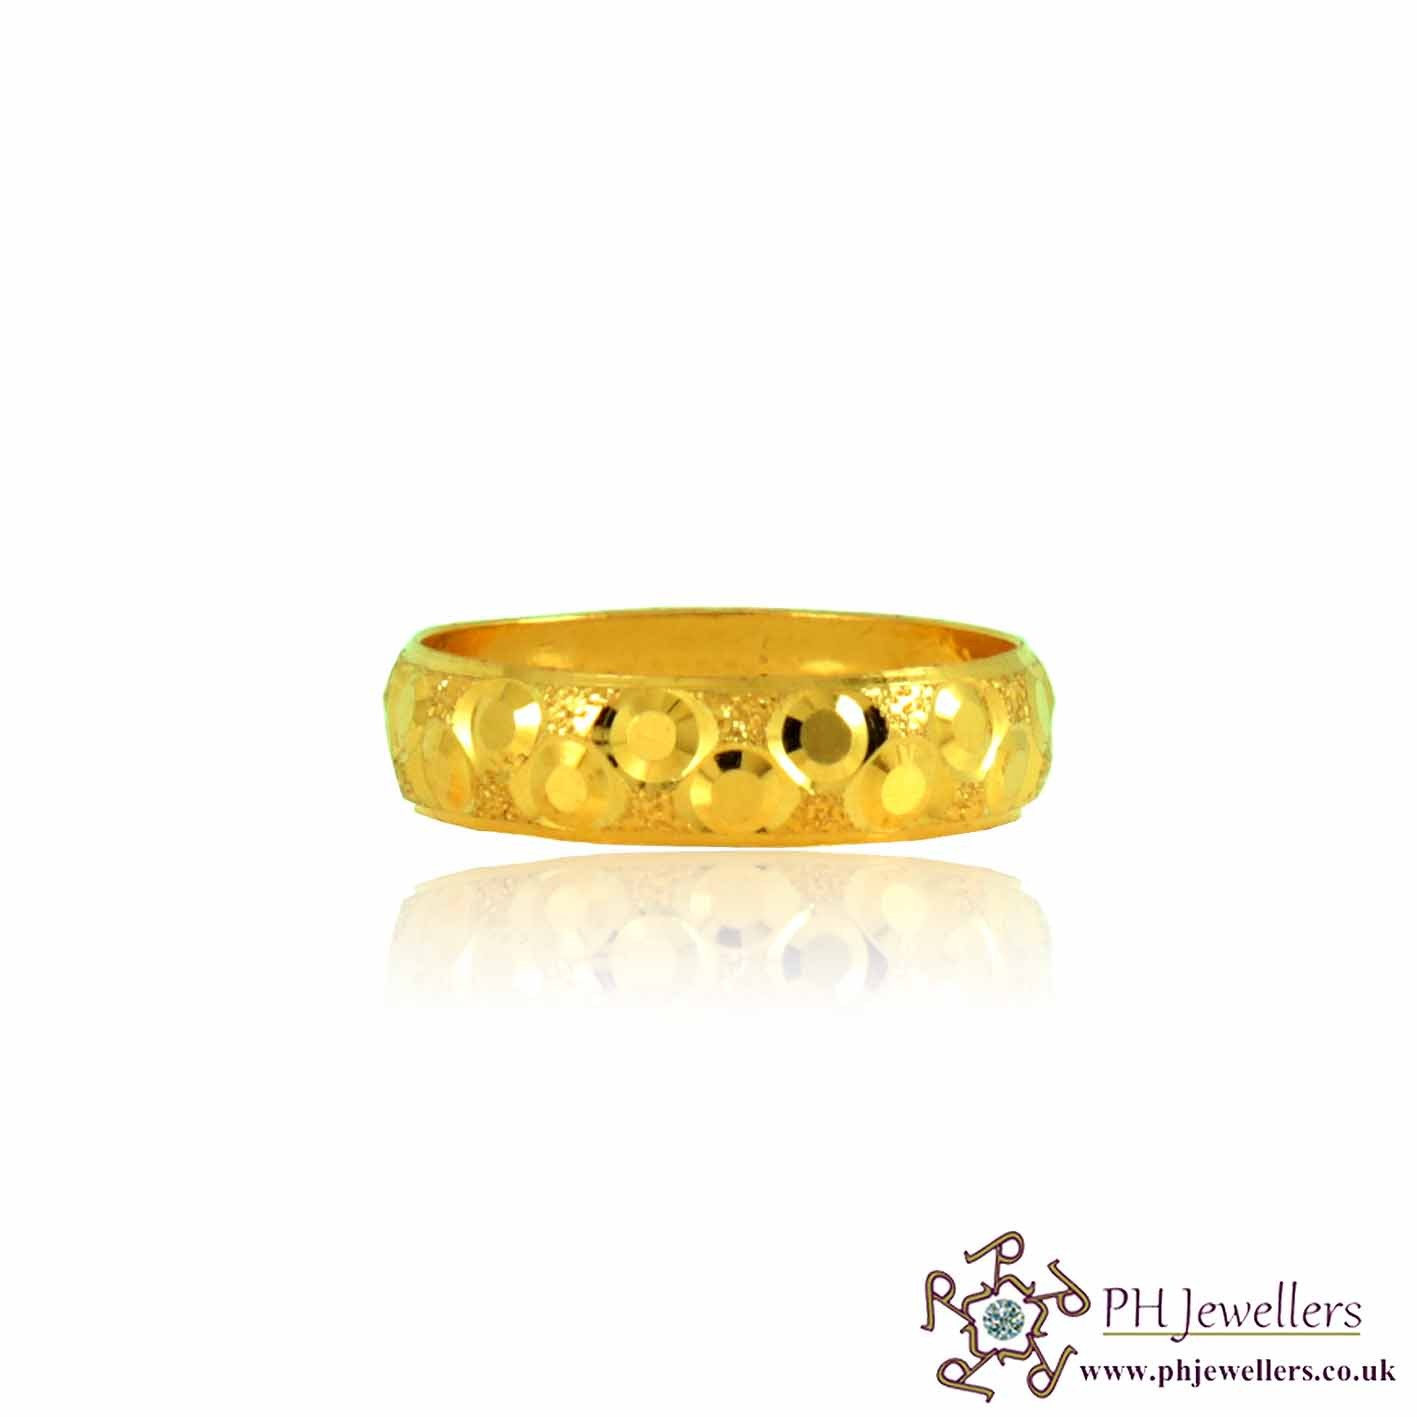 22ct 916 Hallmark Yellow Gold Size K Bridal Wedding Band Ring WB12